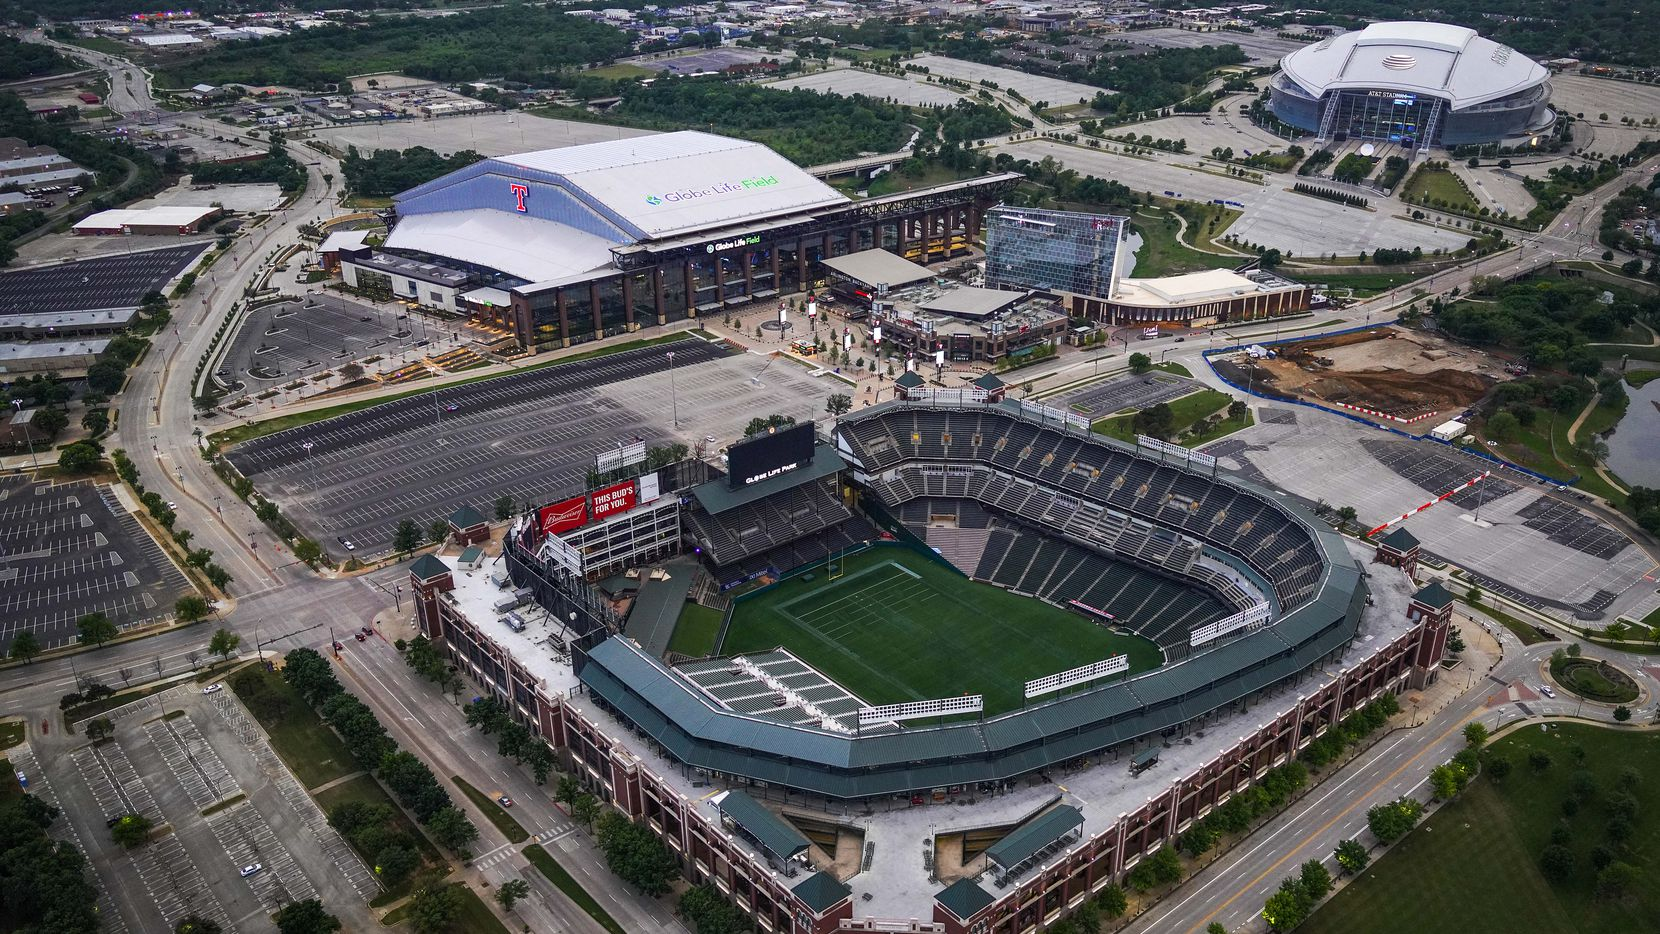 Will fans get to return to Globe Life Field or AT&T Stadium anytime soon? Texas pro sports teams want to make that happen, but with the necessary precautions, Texas Sen. John Cornyn said.